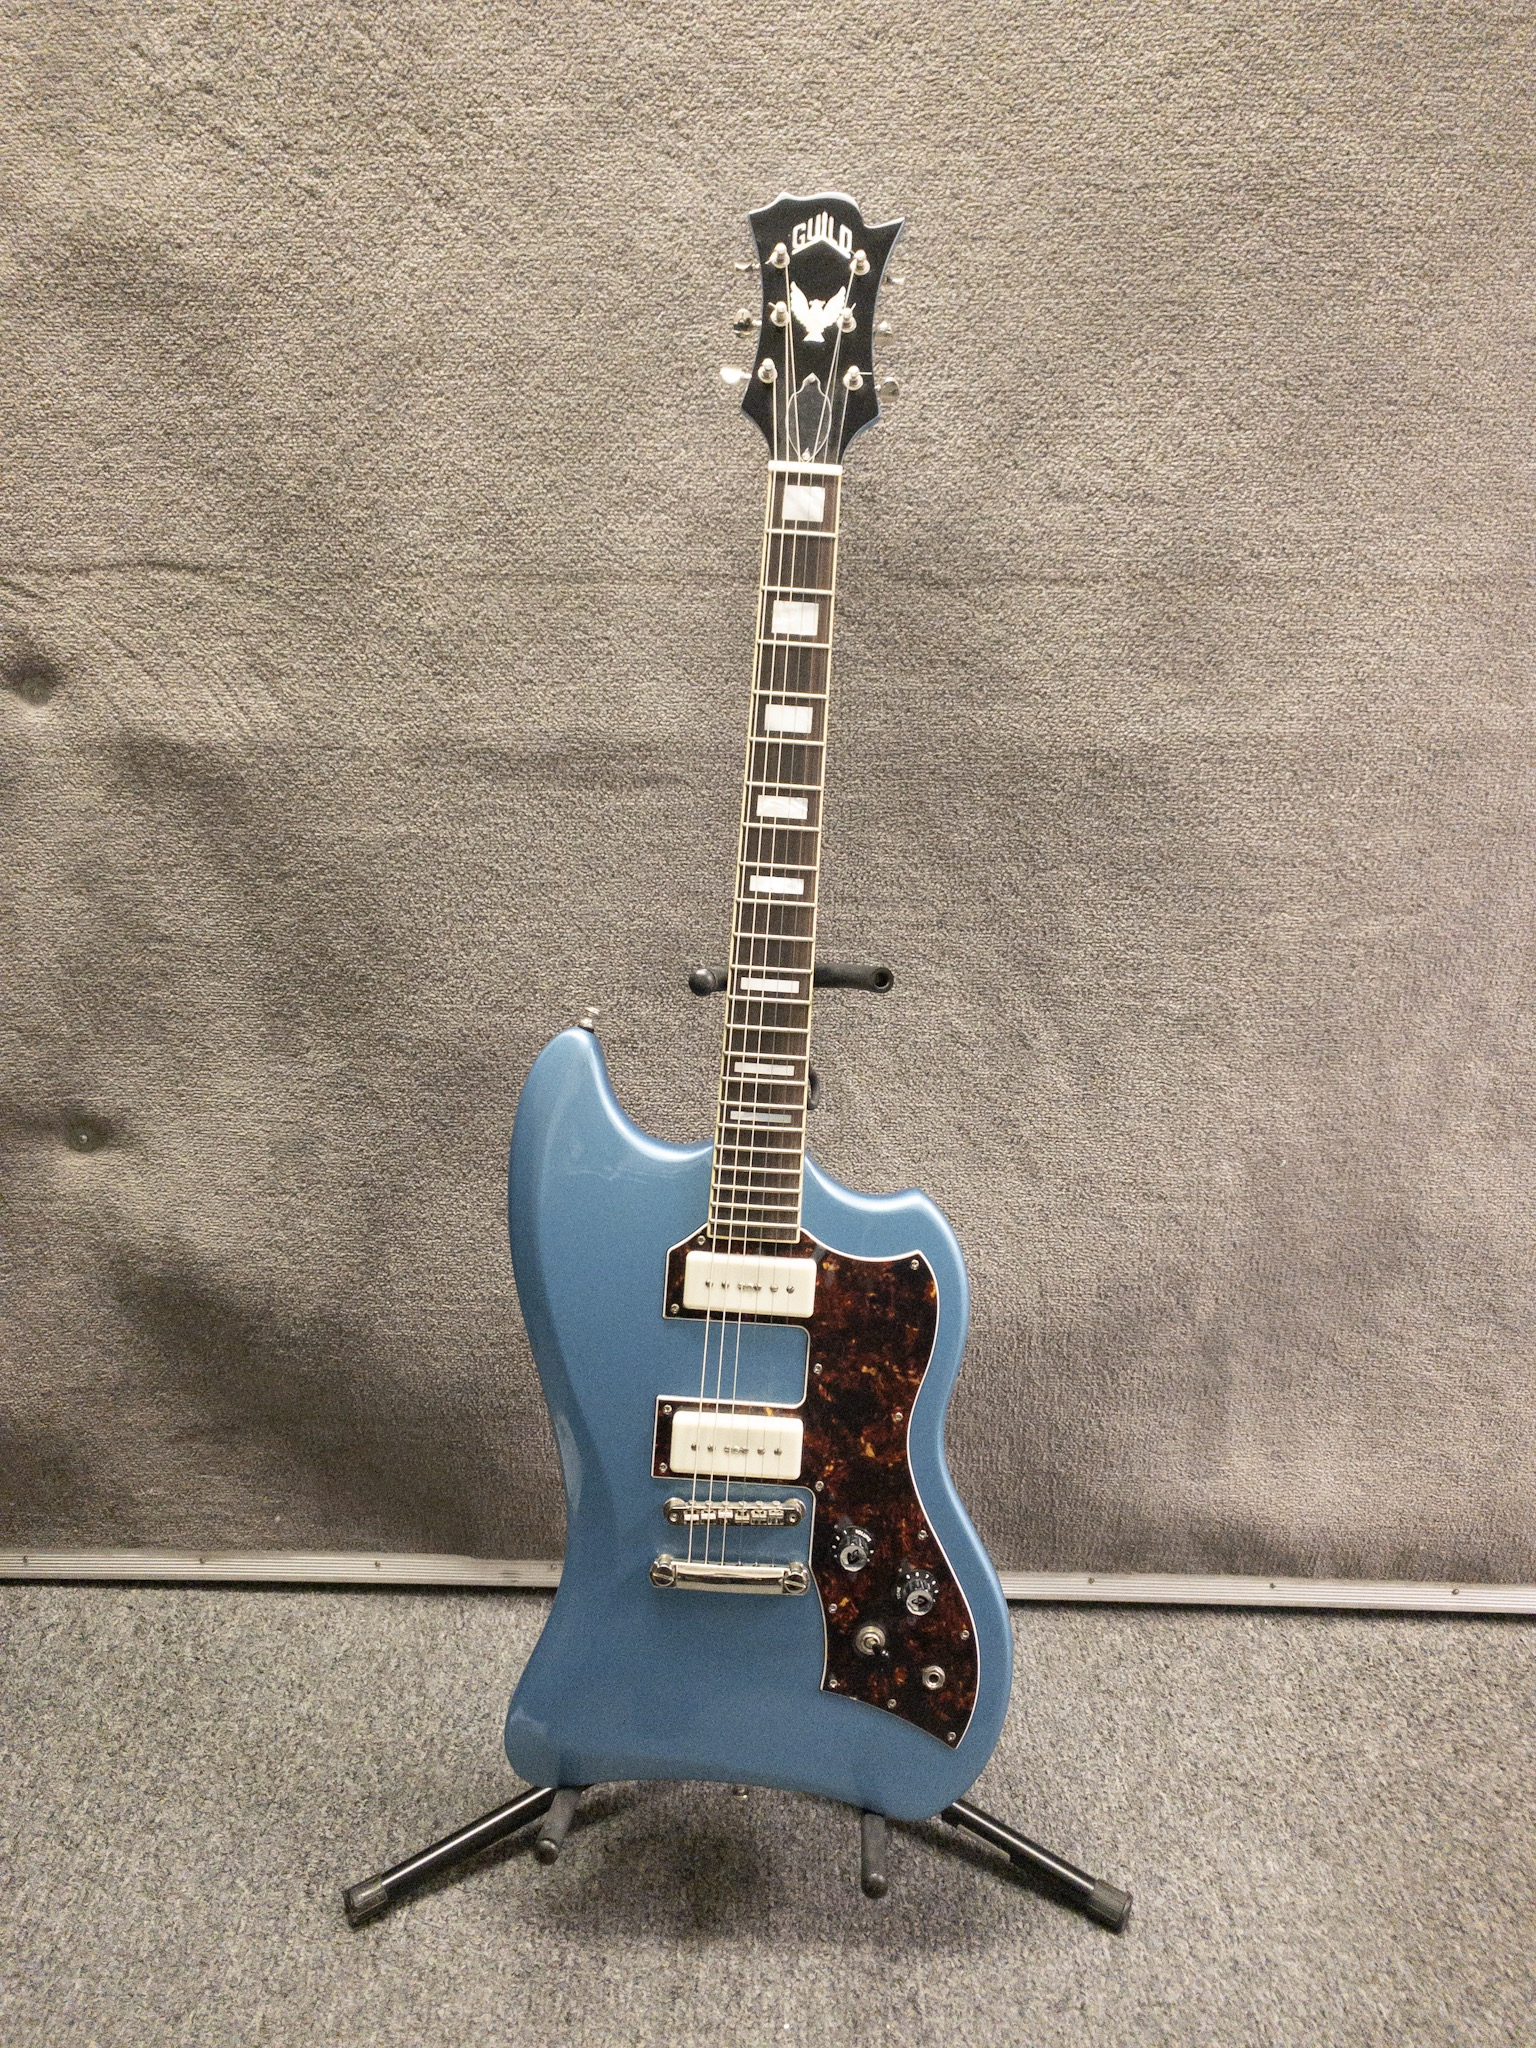 guild t bird electric guitar south austin music new used and vintage instruments acoustic. Black Bedroom Furniture Sets. Home Design Ideas